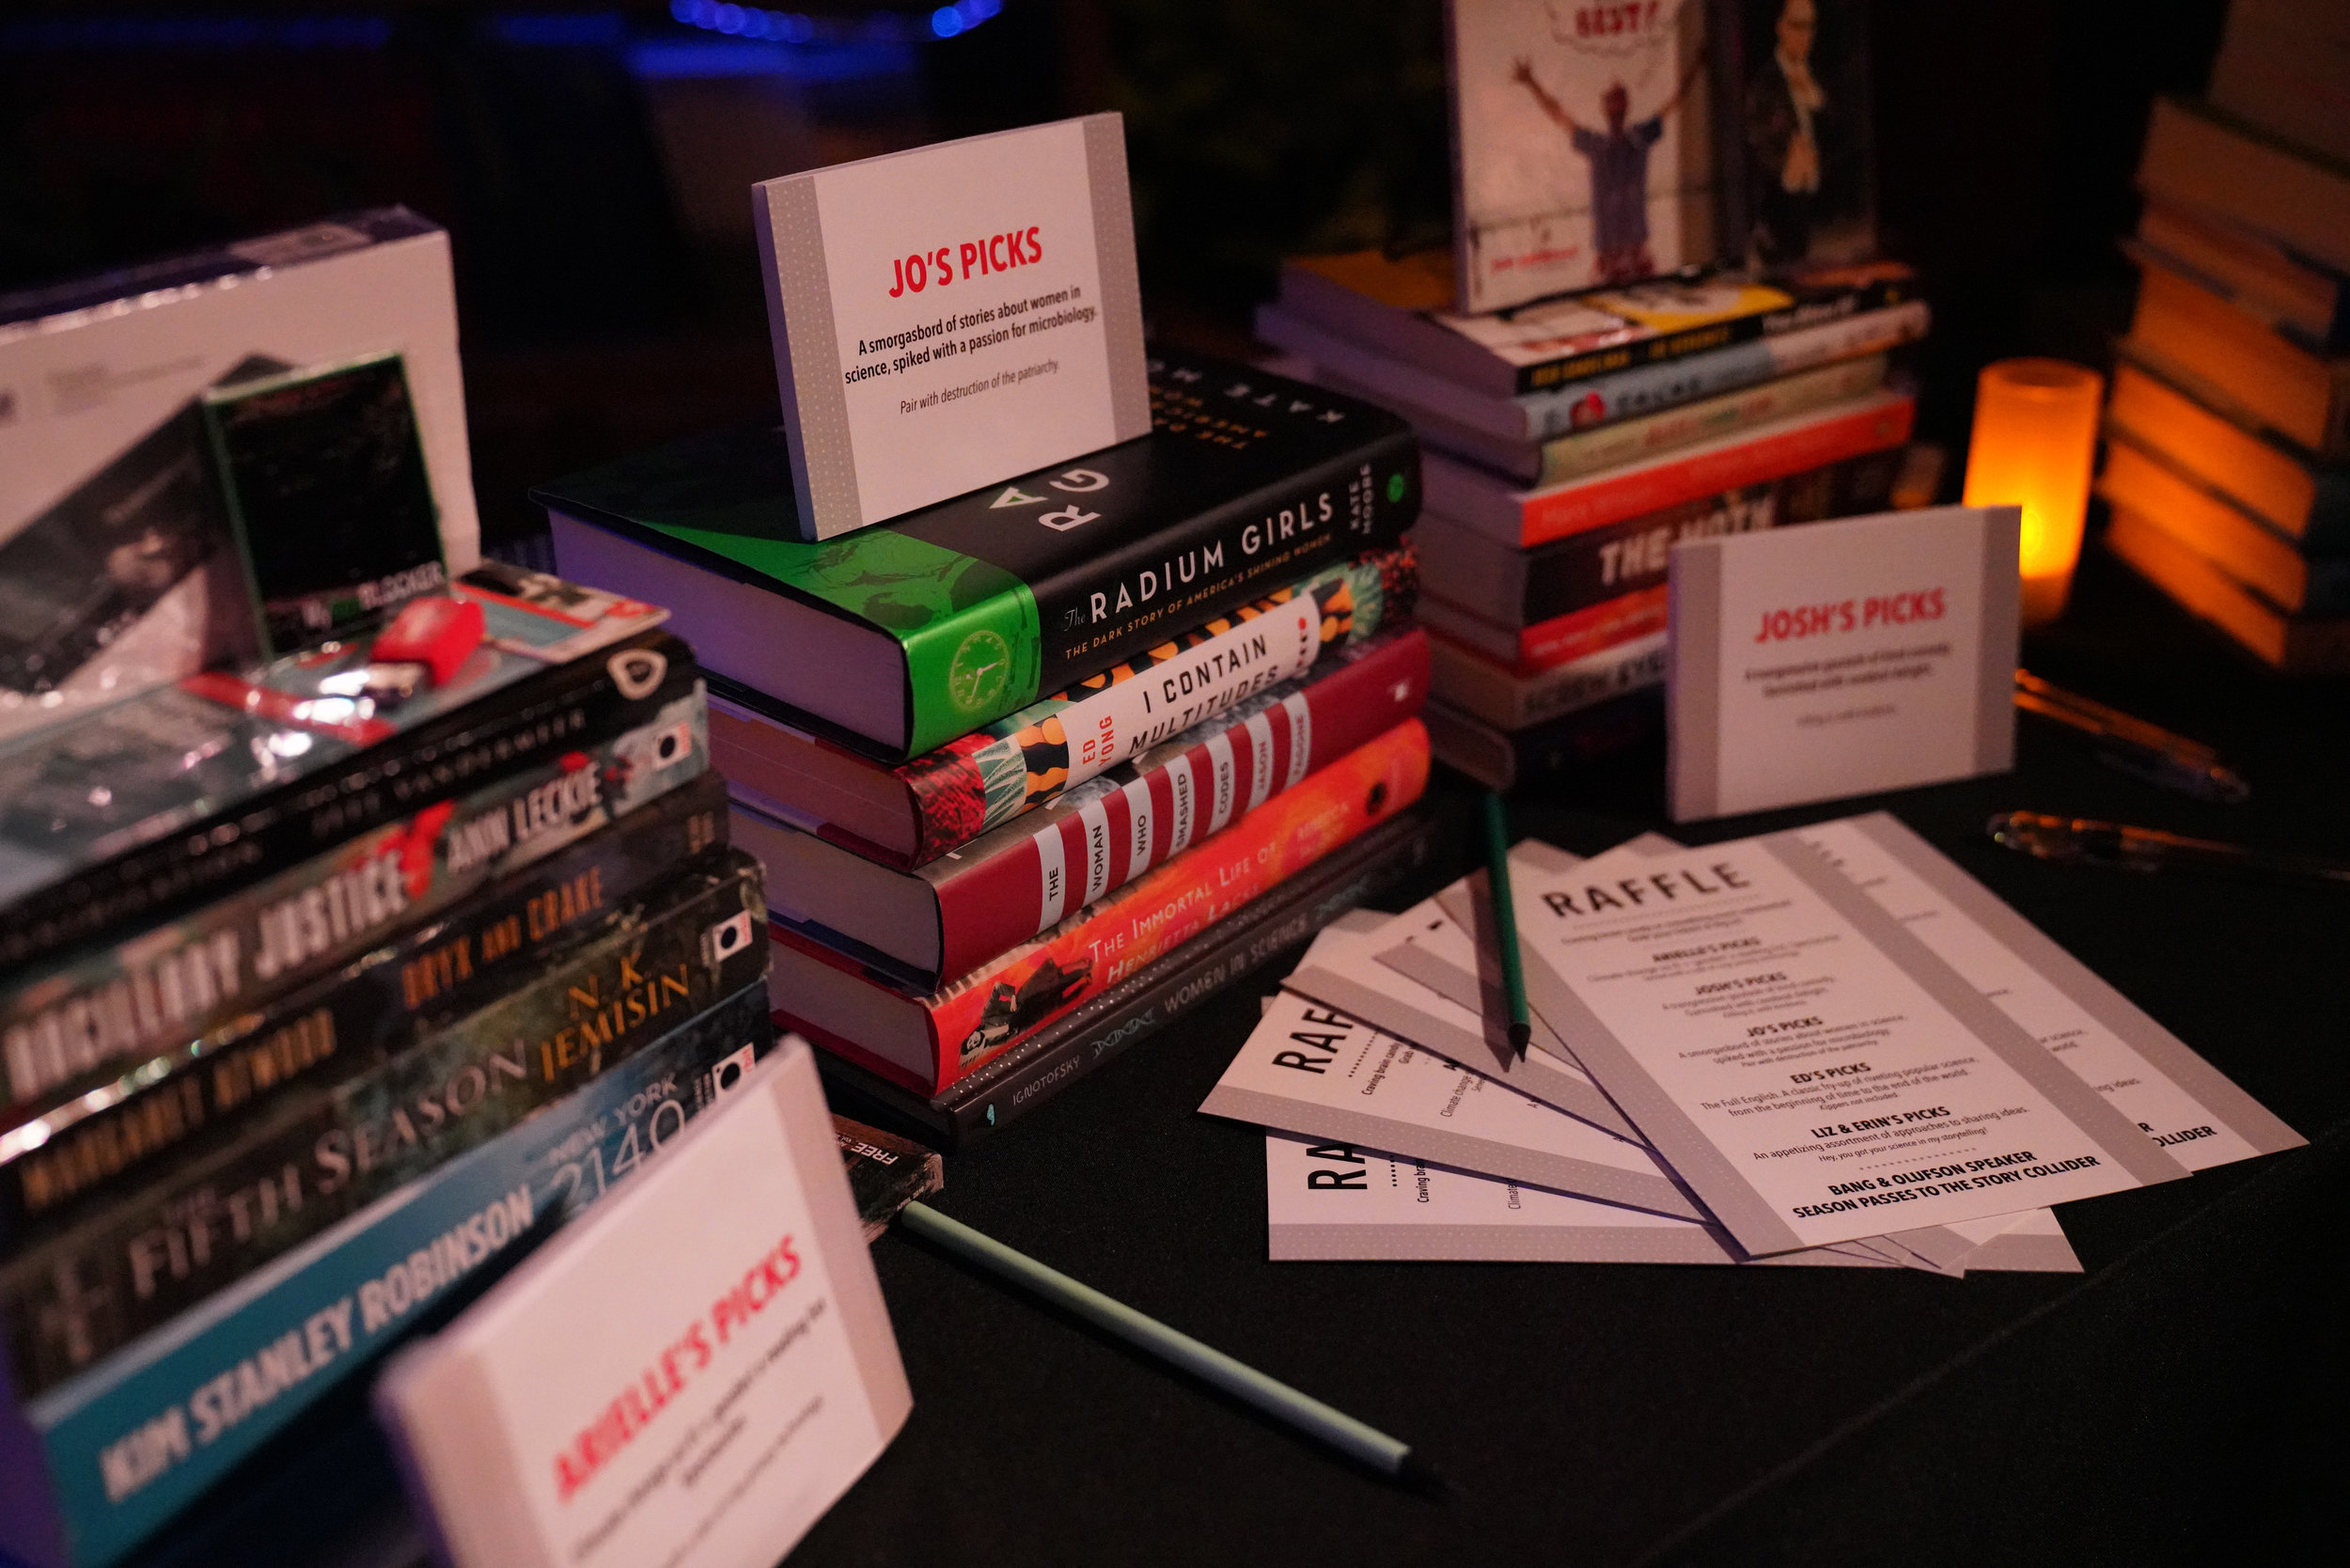 Each of our storytellers assembled a package of books for our raffle, with themes ranging from comedy to microbiology.